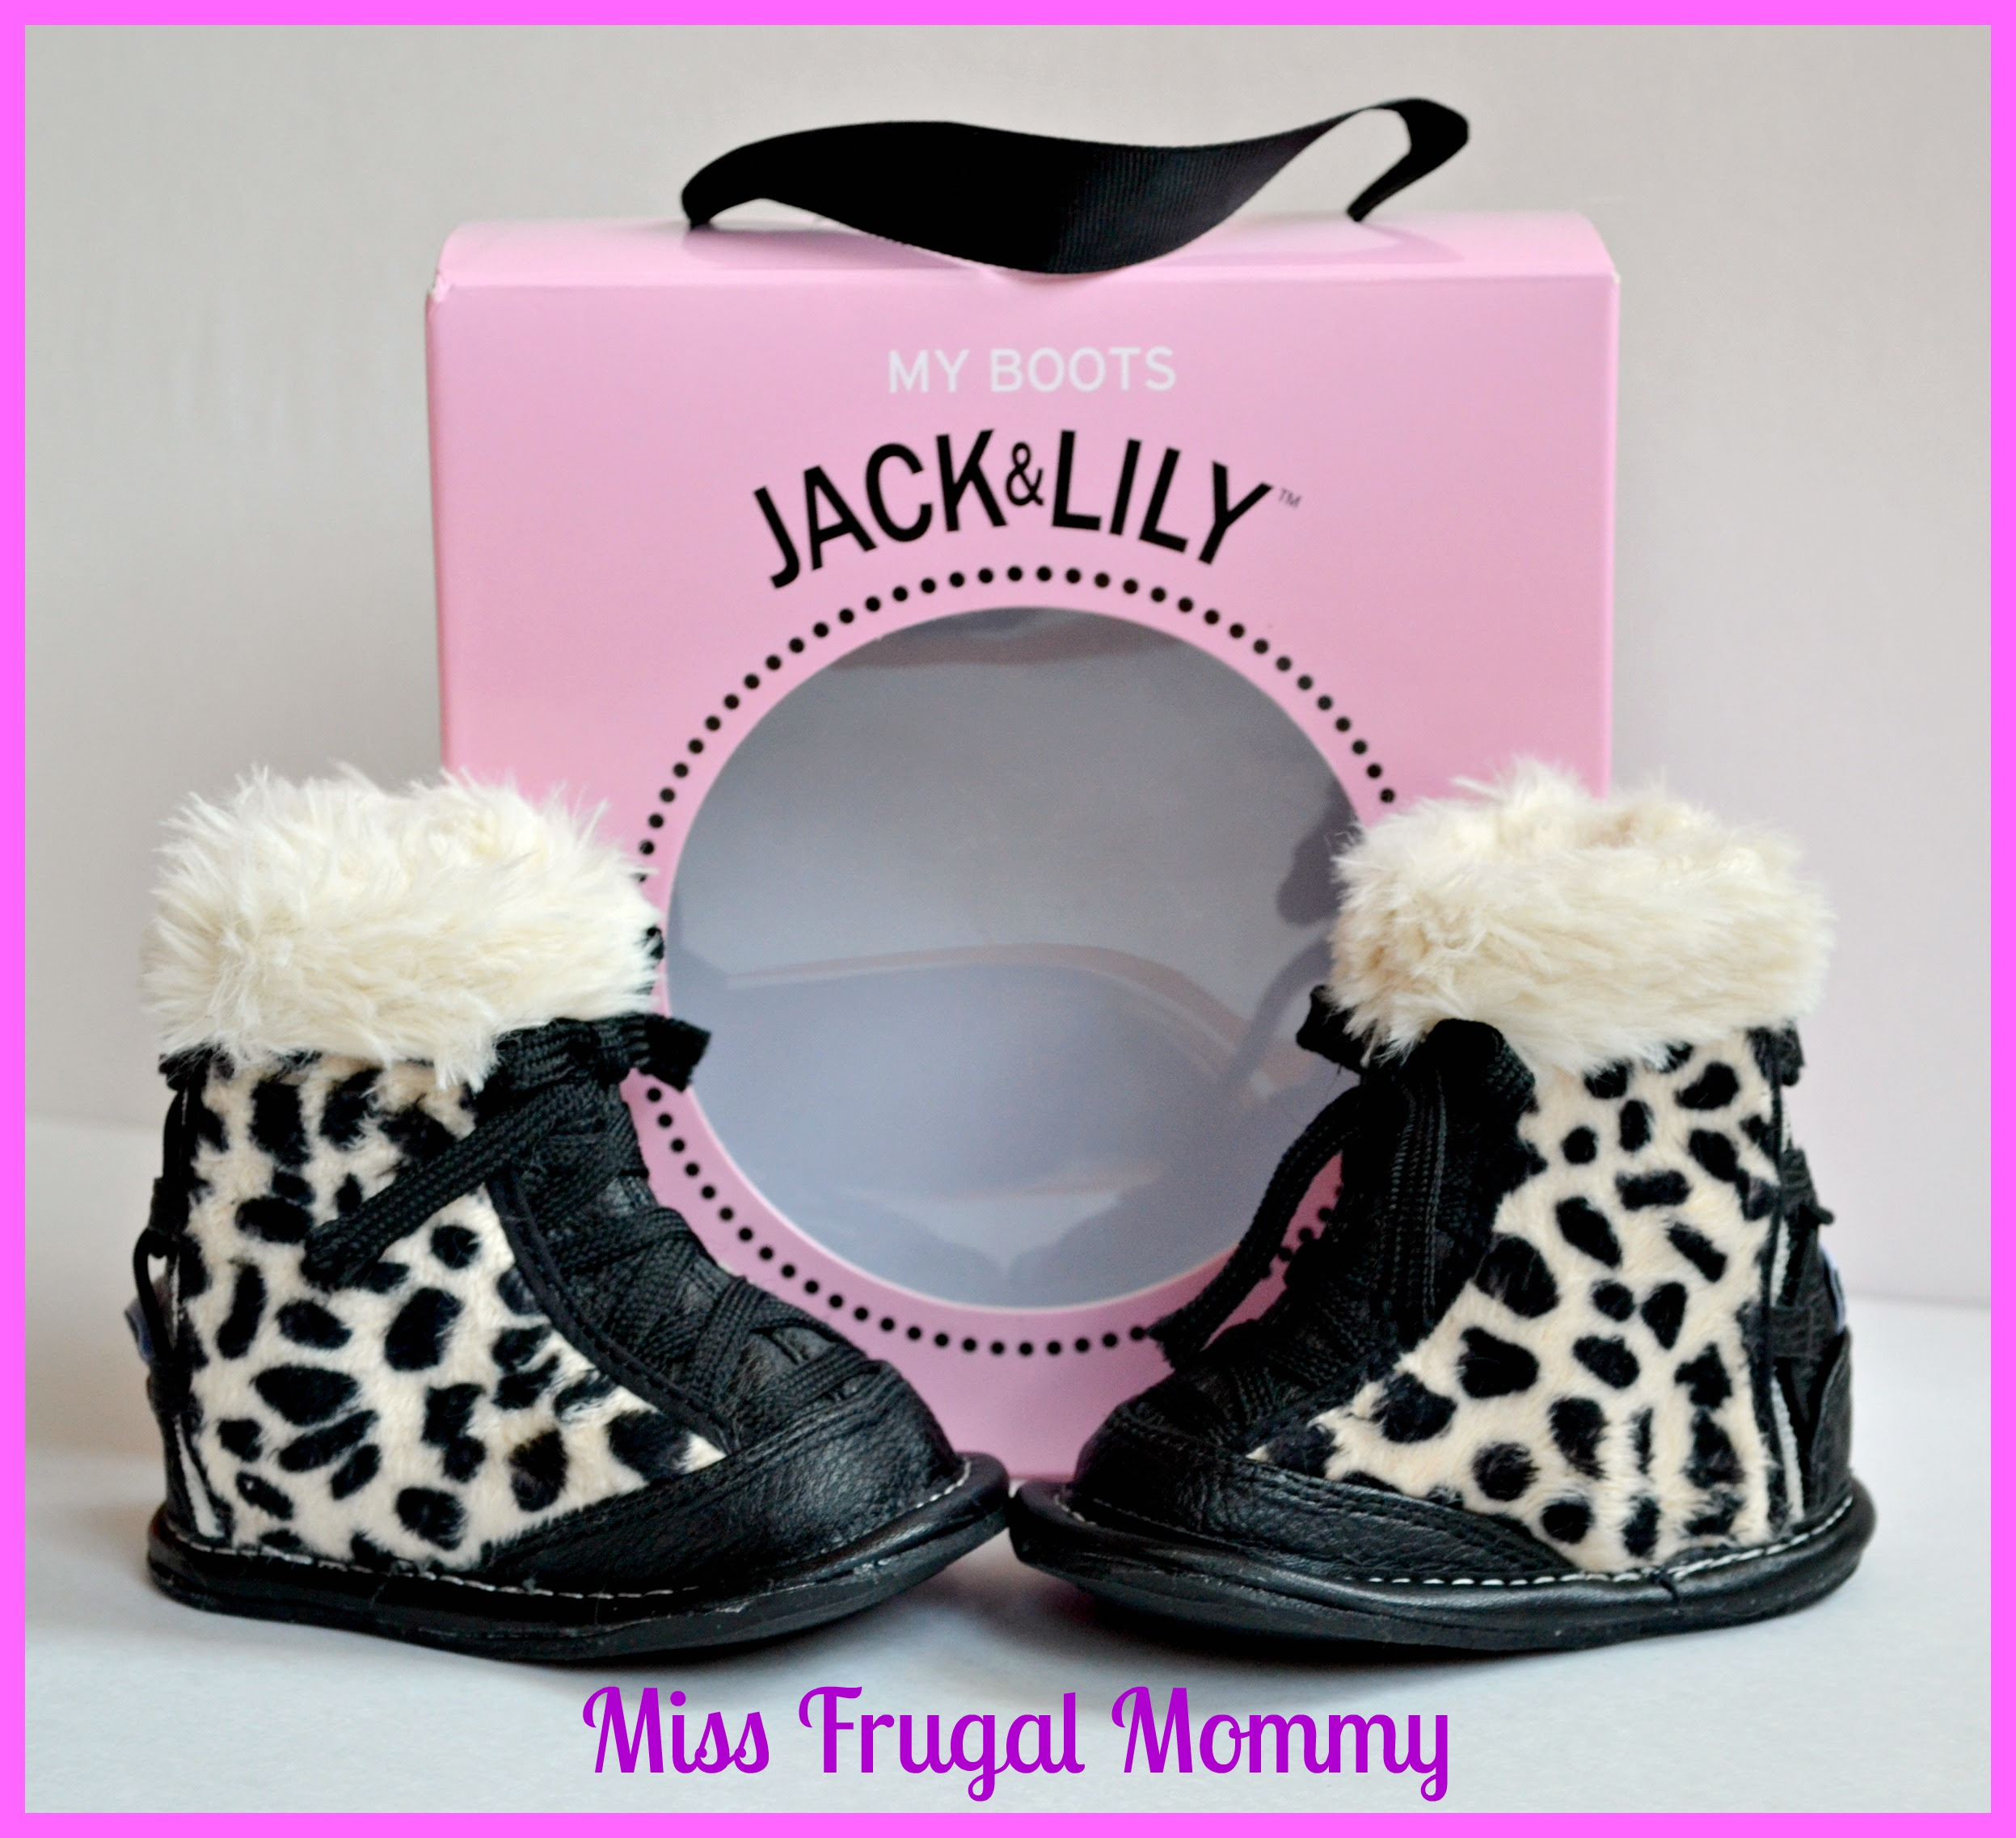 Jack & Lily: Leopard Laced Boots Review (Getting Ready For Baby Gift Guide)